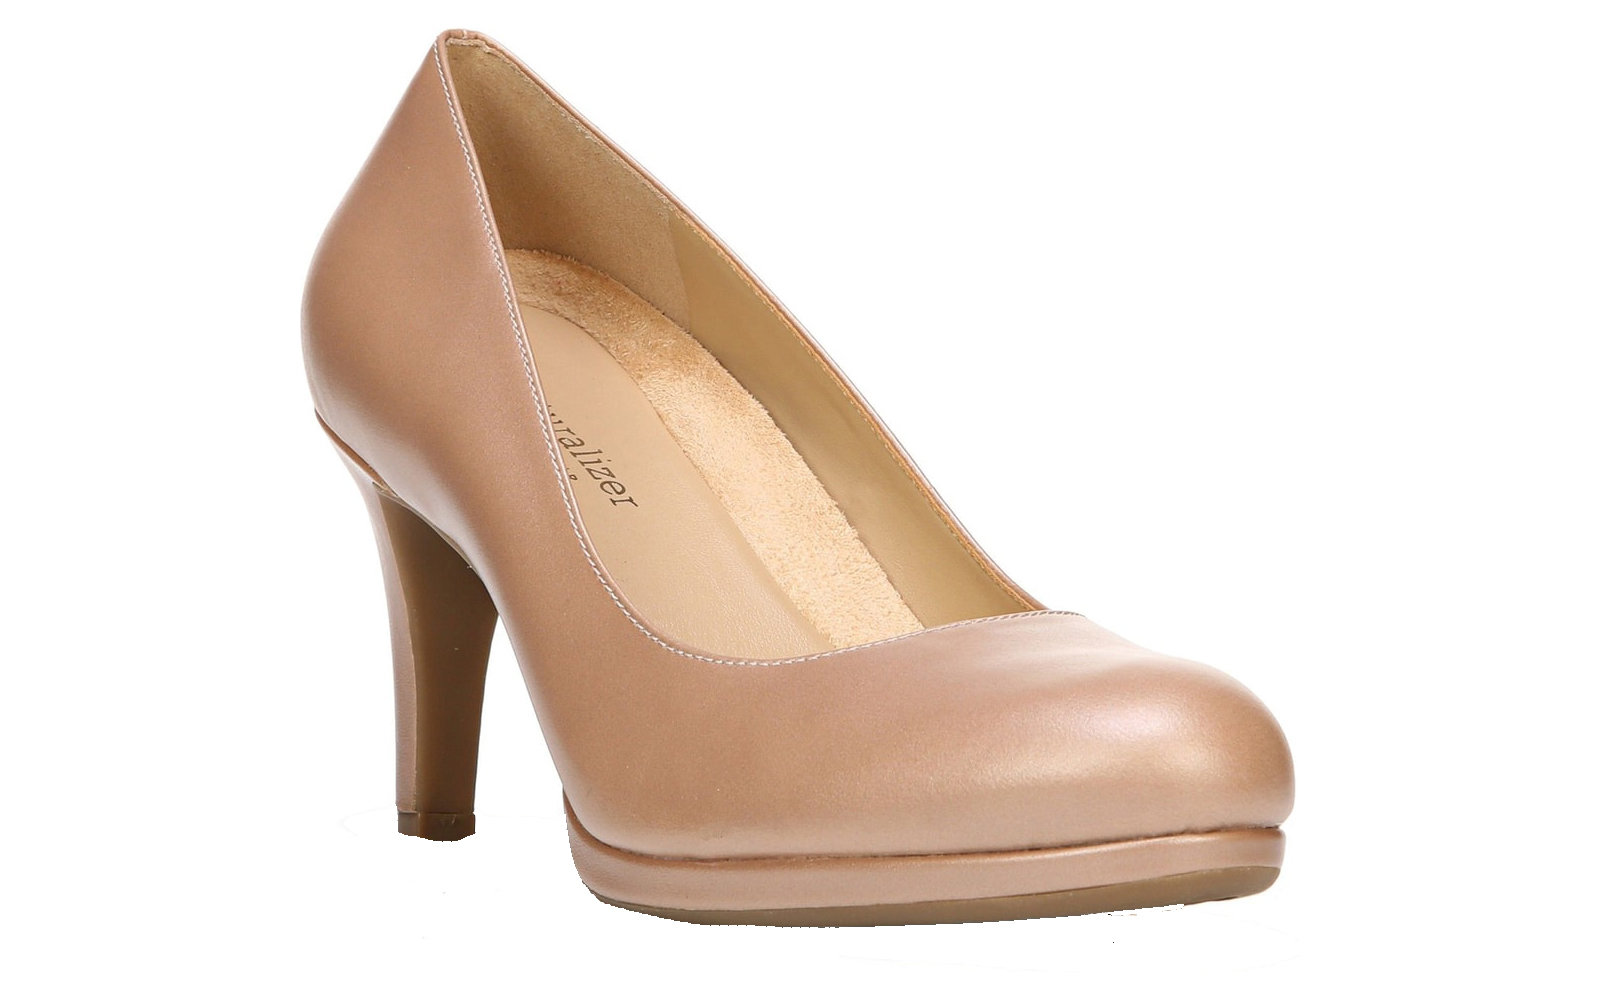 Naturalizers Michelle Pump